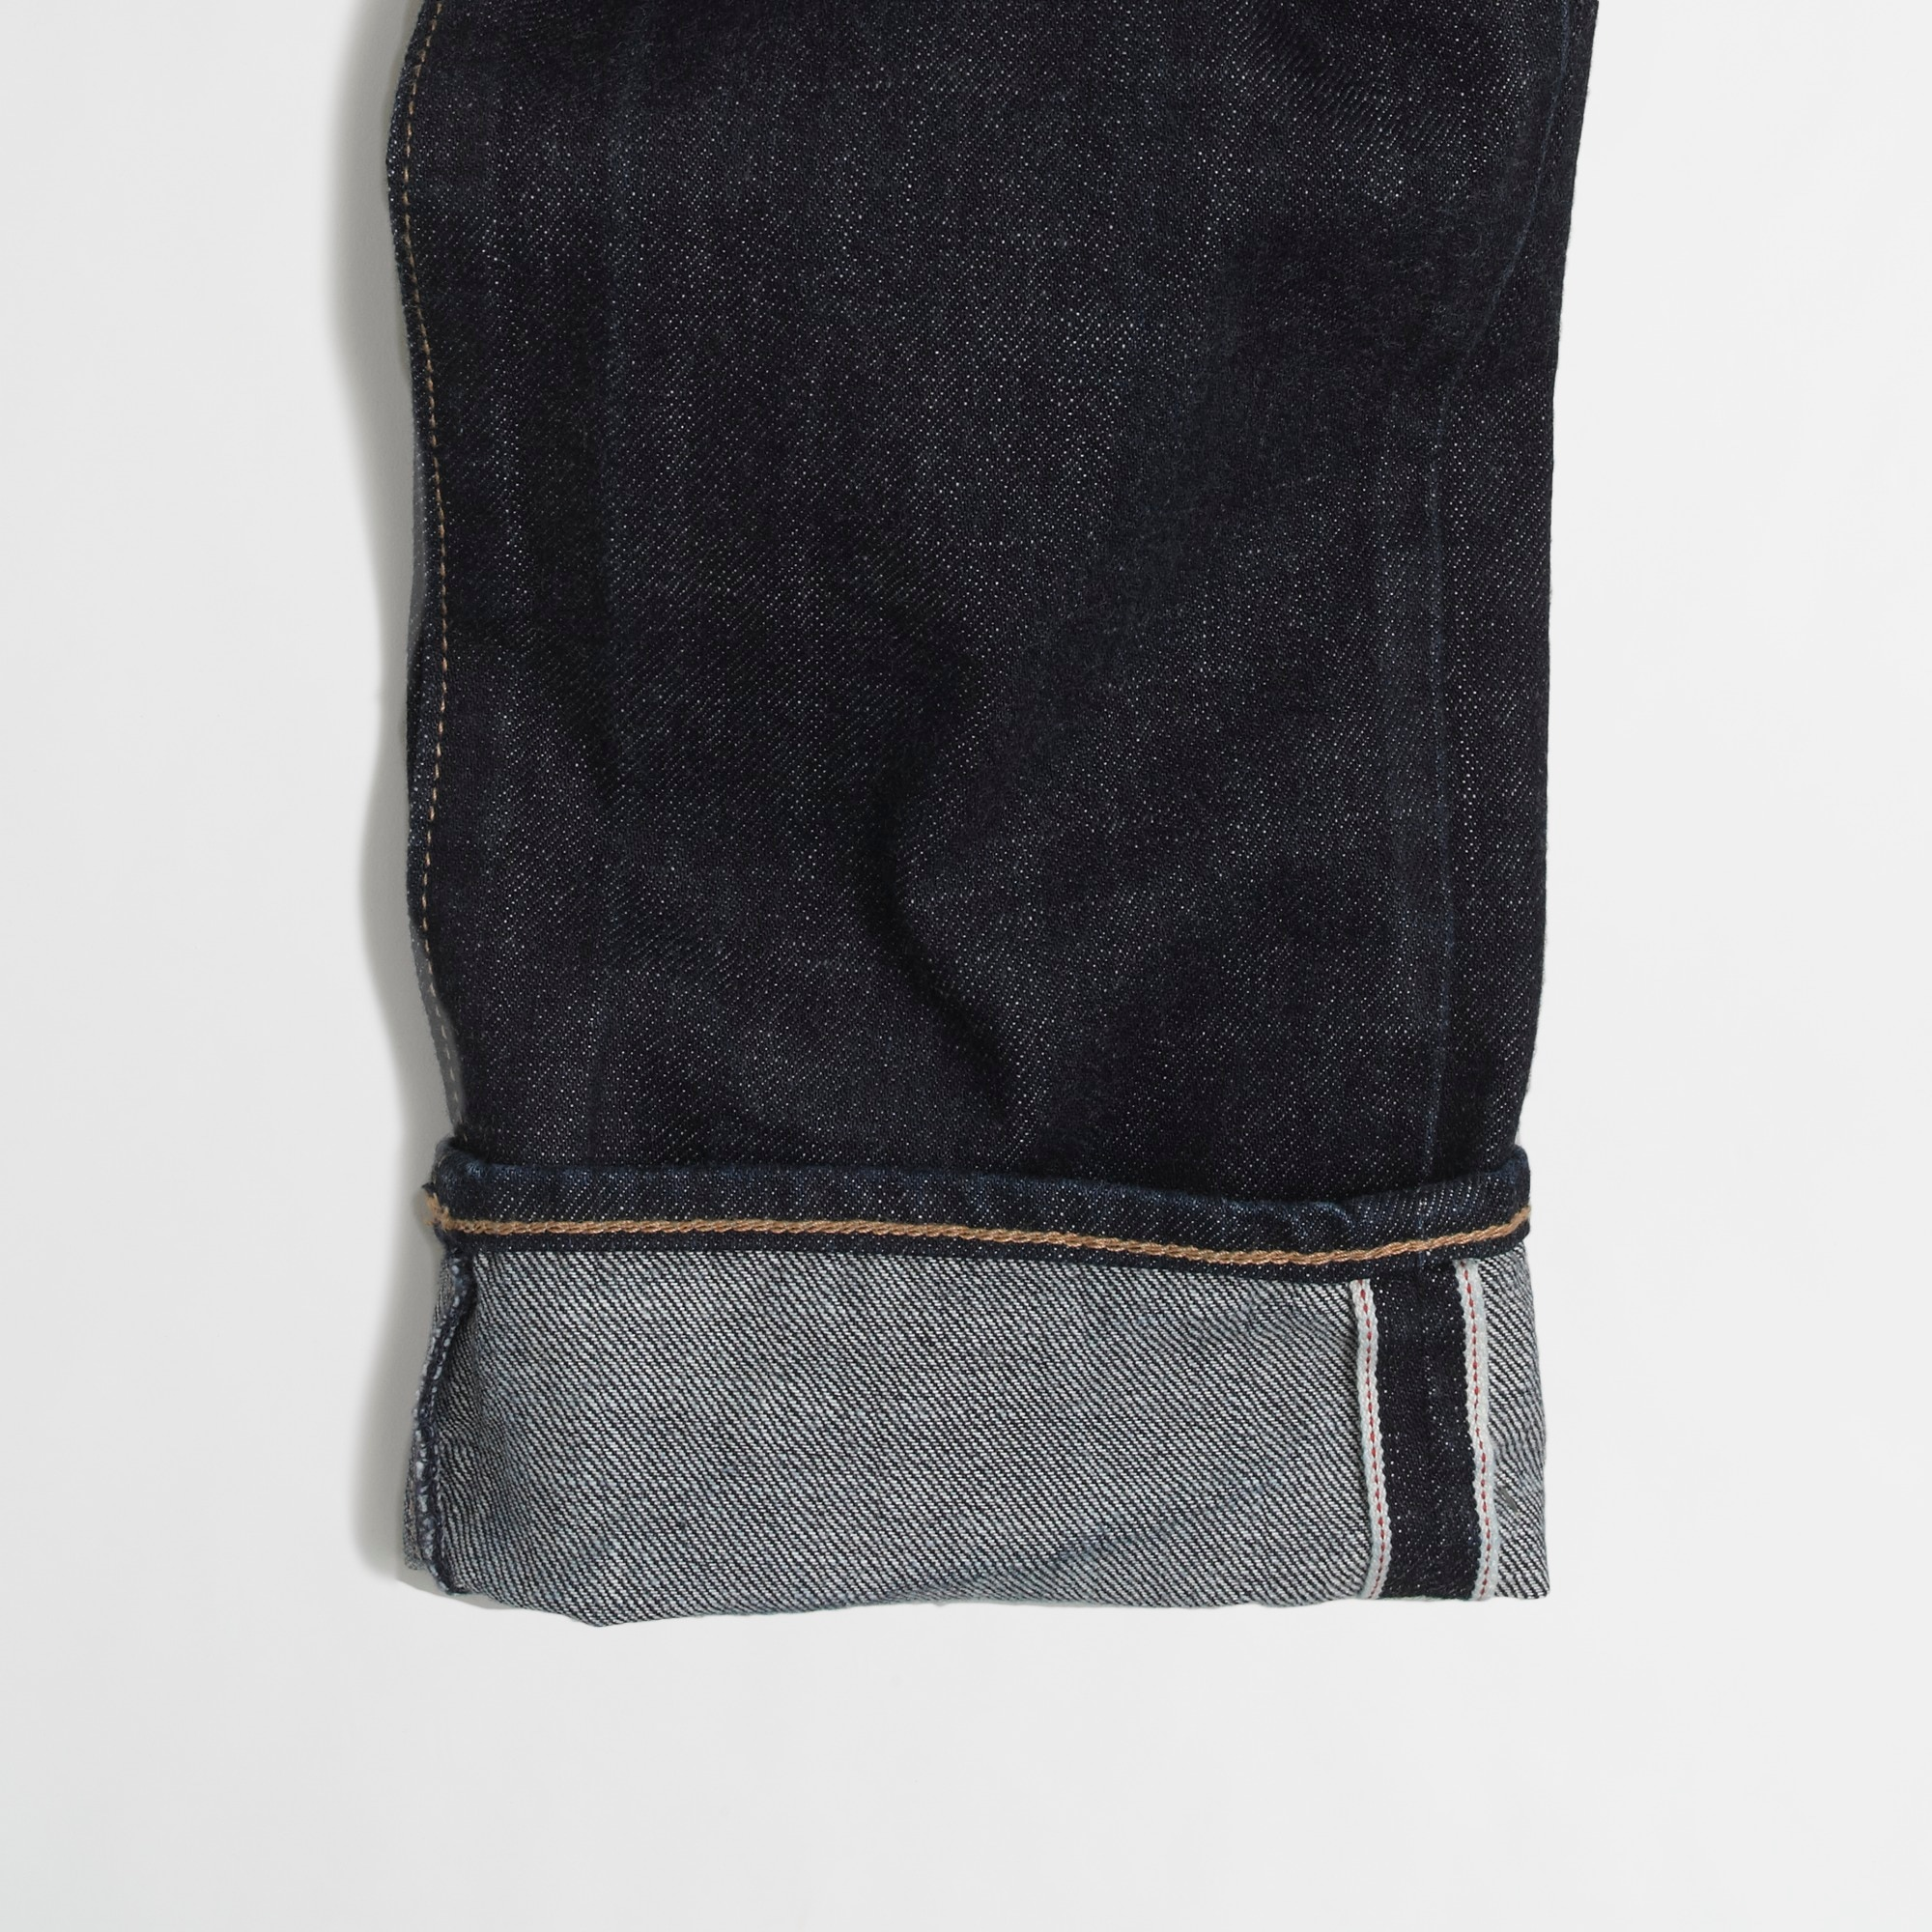 Image 2 for Slim-fit selvedge jean in dark wash